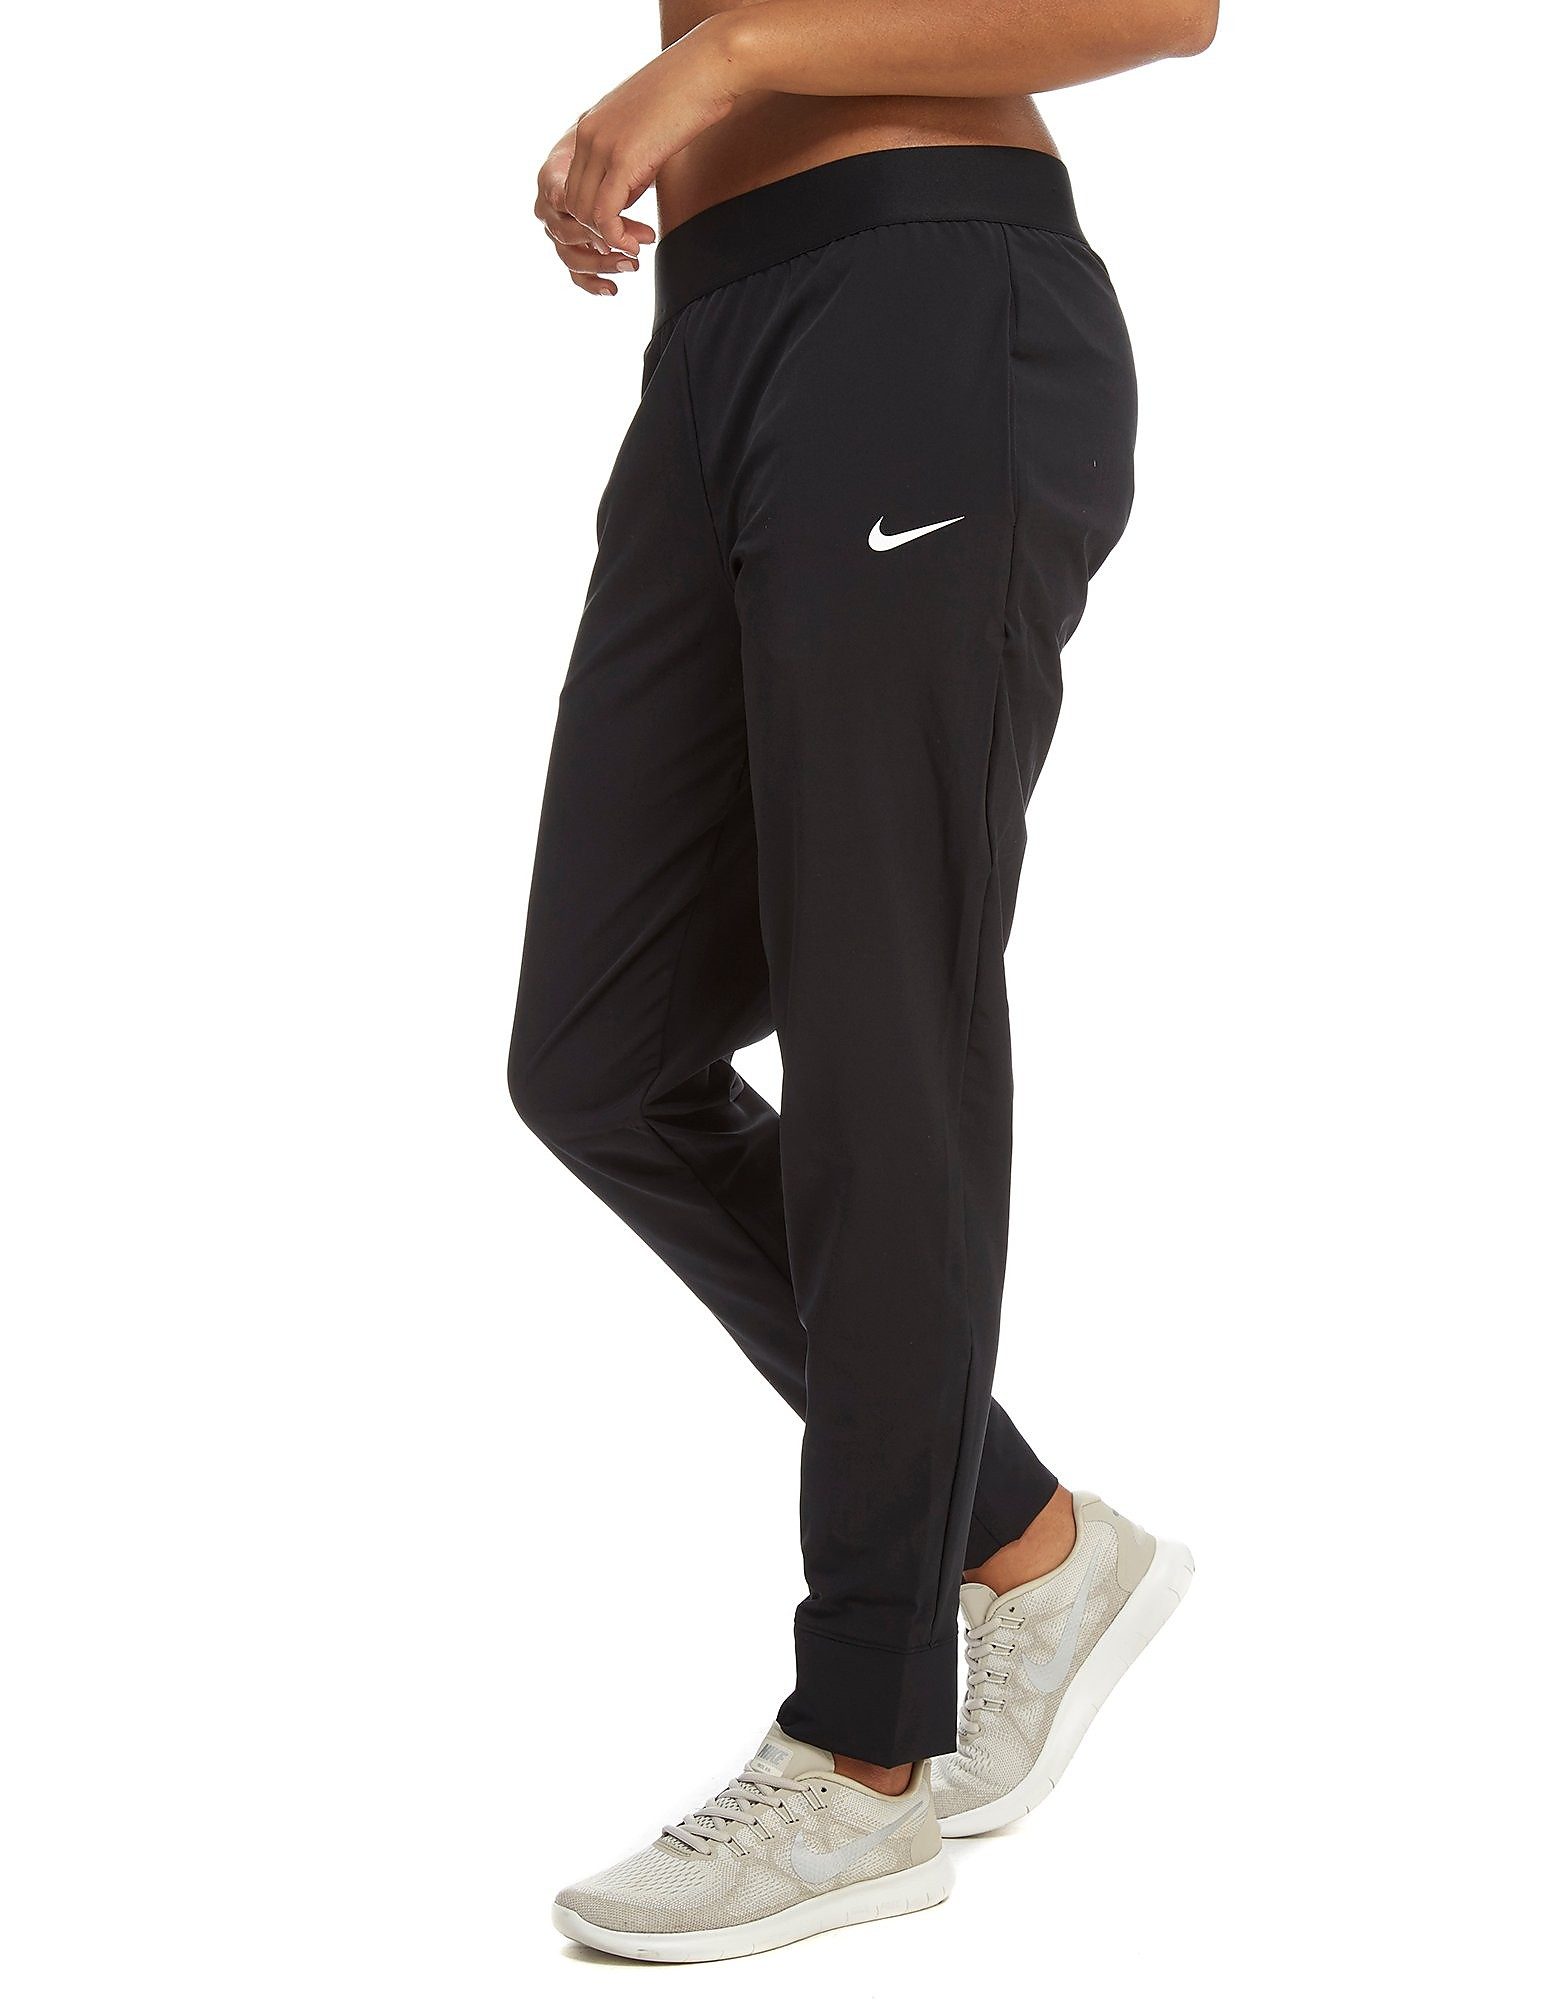 Nike Bliss Studio Pants